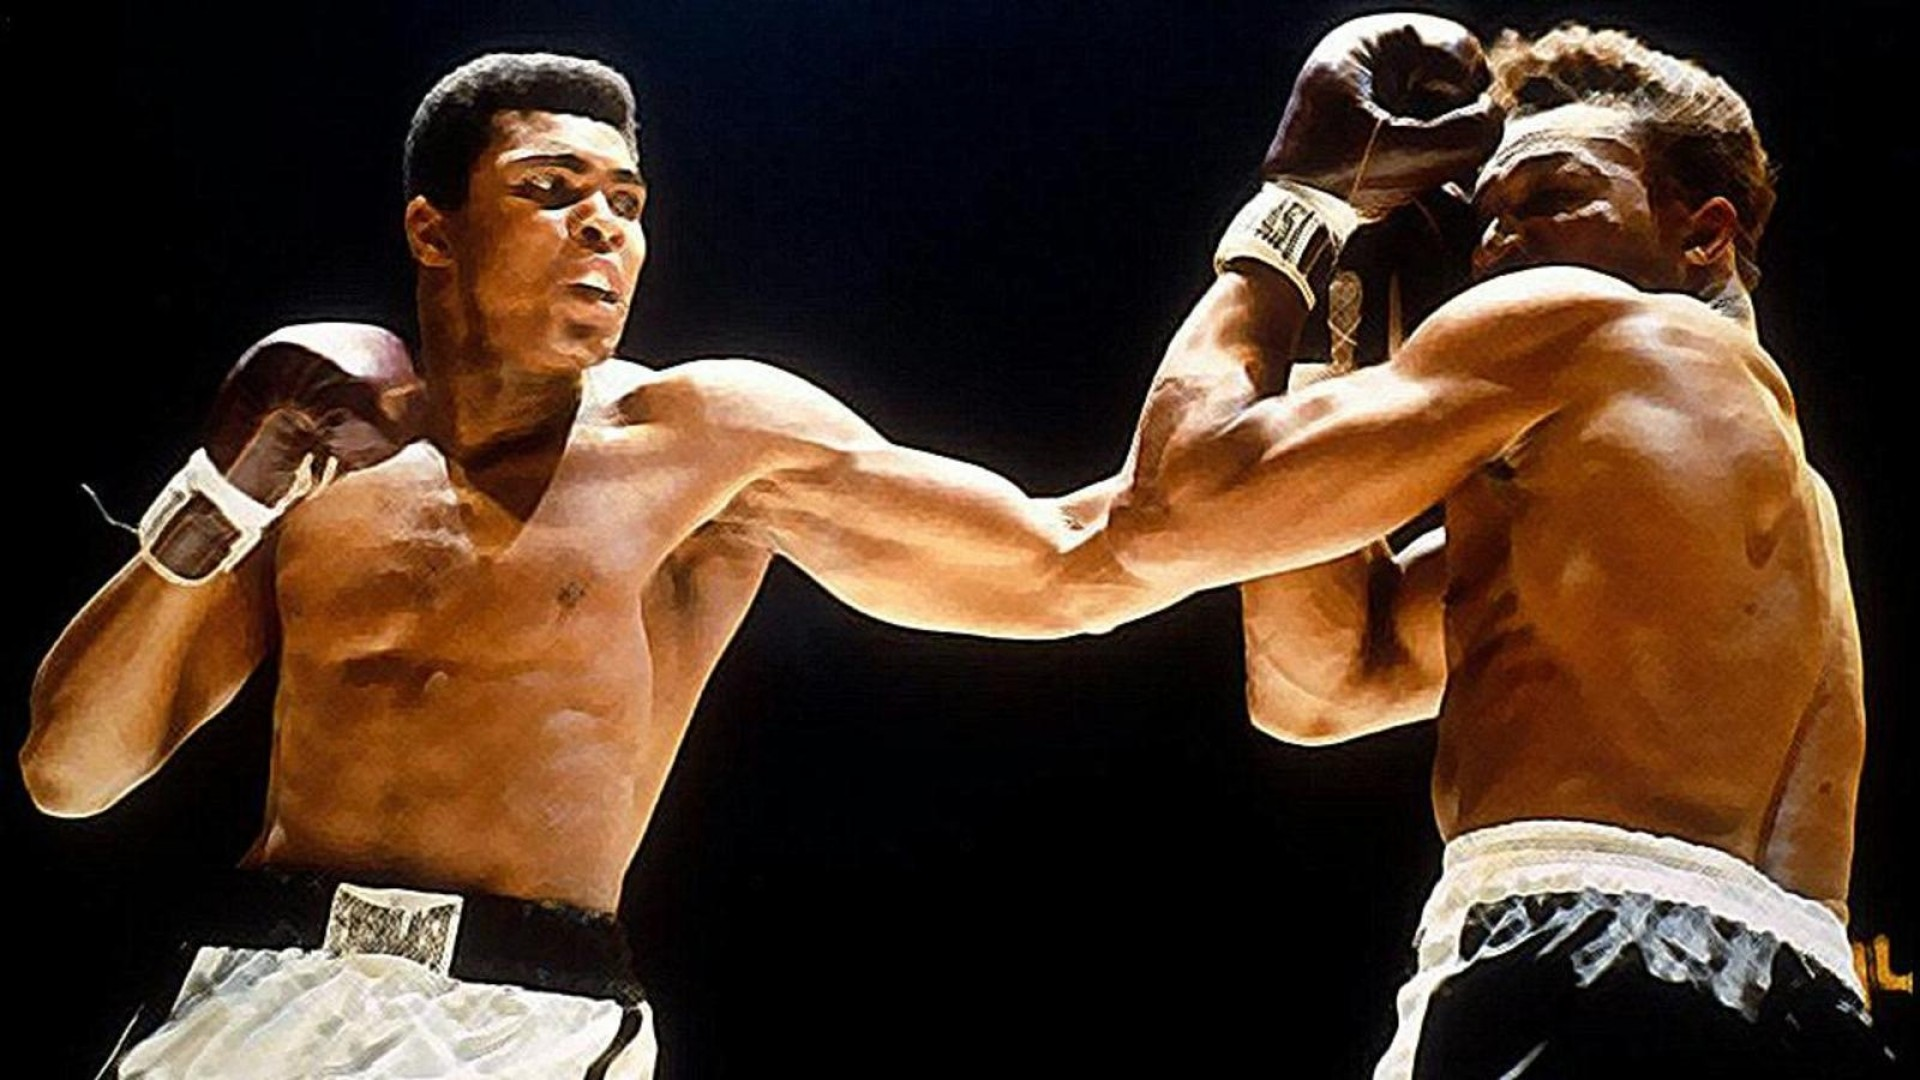 MuhaMMAd Ali HD Wallpapers (75+ images)